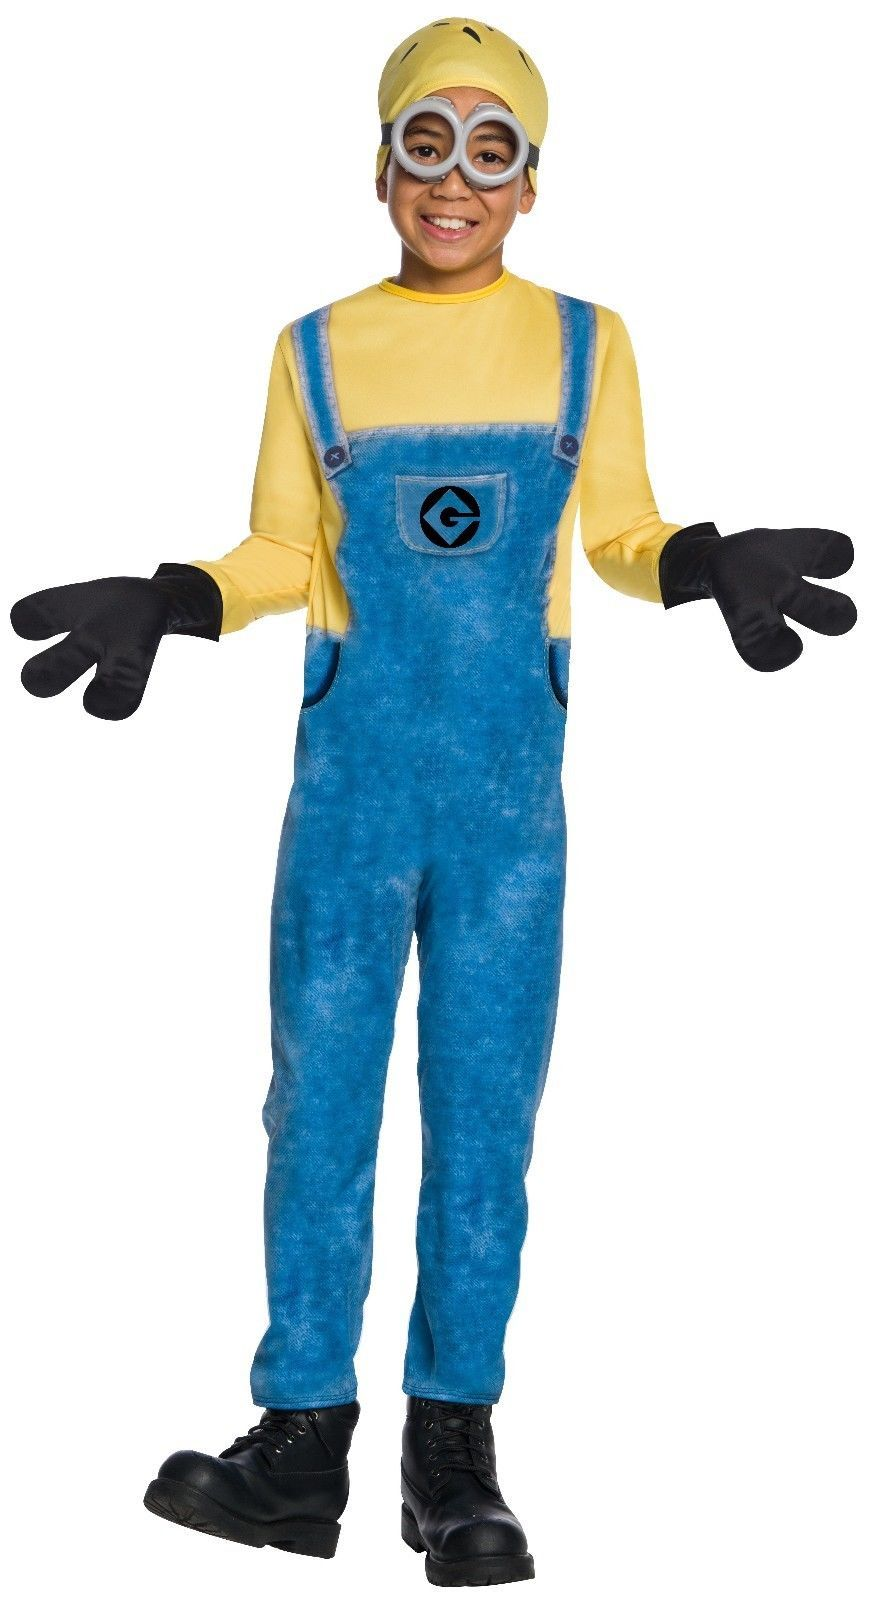 Rubie's Costume Jerry Minion Kids Childrens Outfit Halloween Movie Show 630725